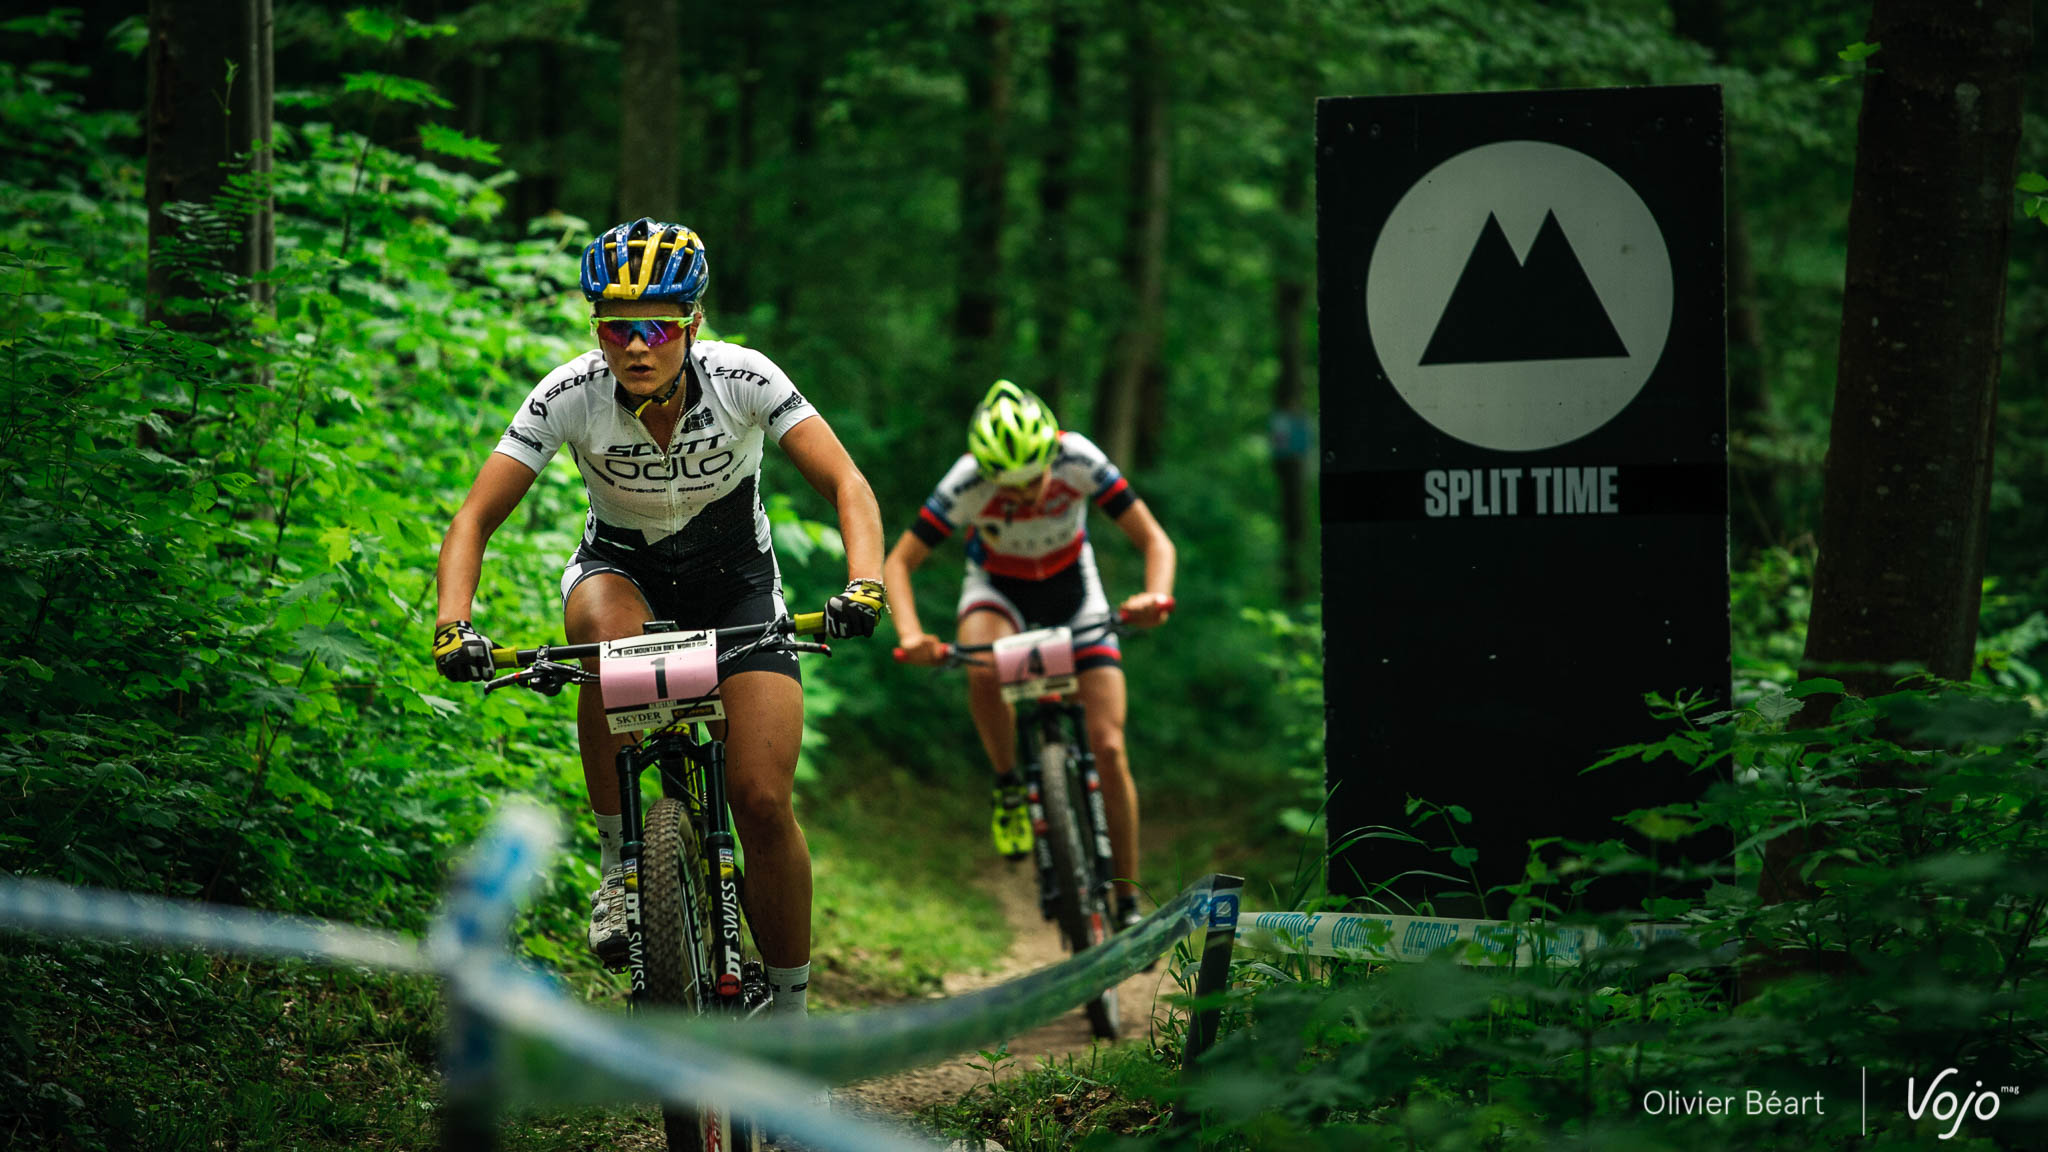 World_Cup_Albstadt_2015_Women_U23_Rissveds_Copyright_OBeart_VojoMag-106